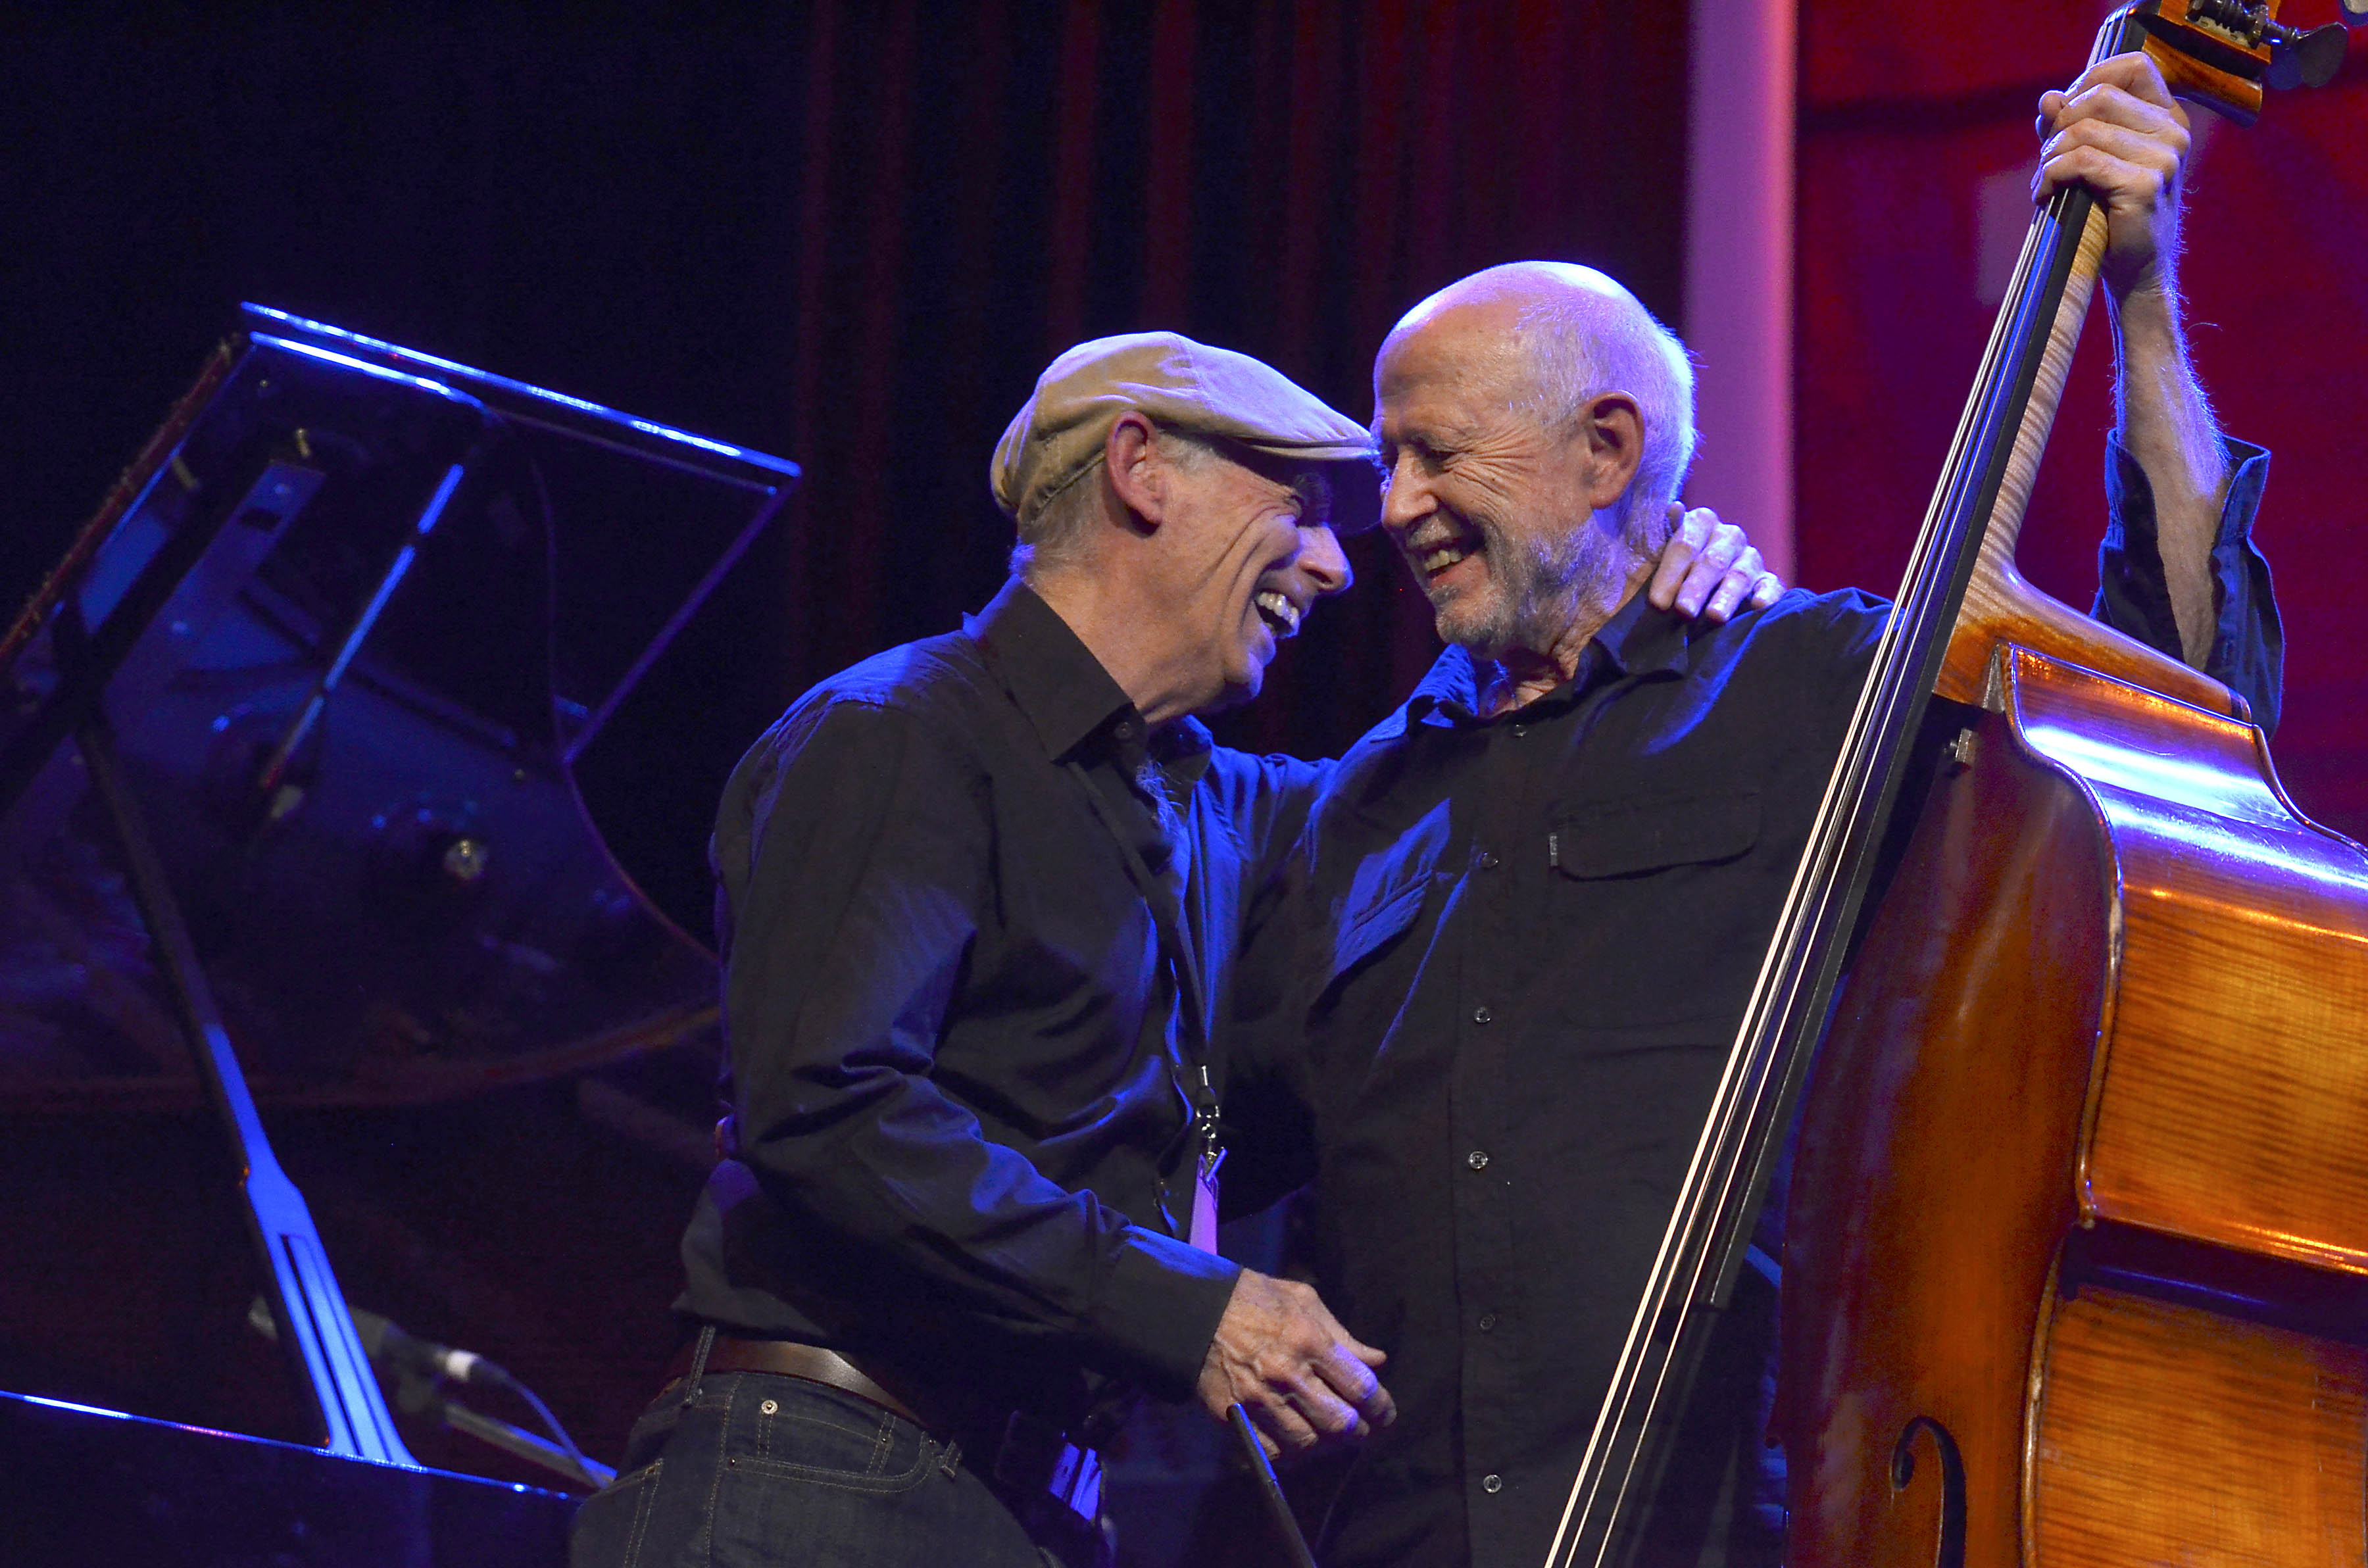 Mike Nock and Barre Phillips